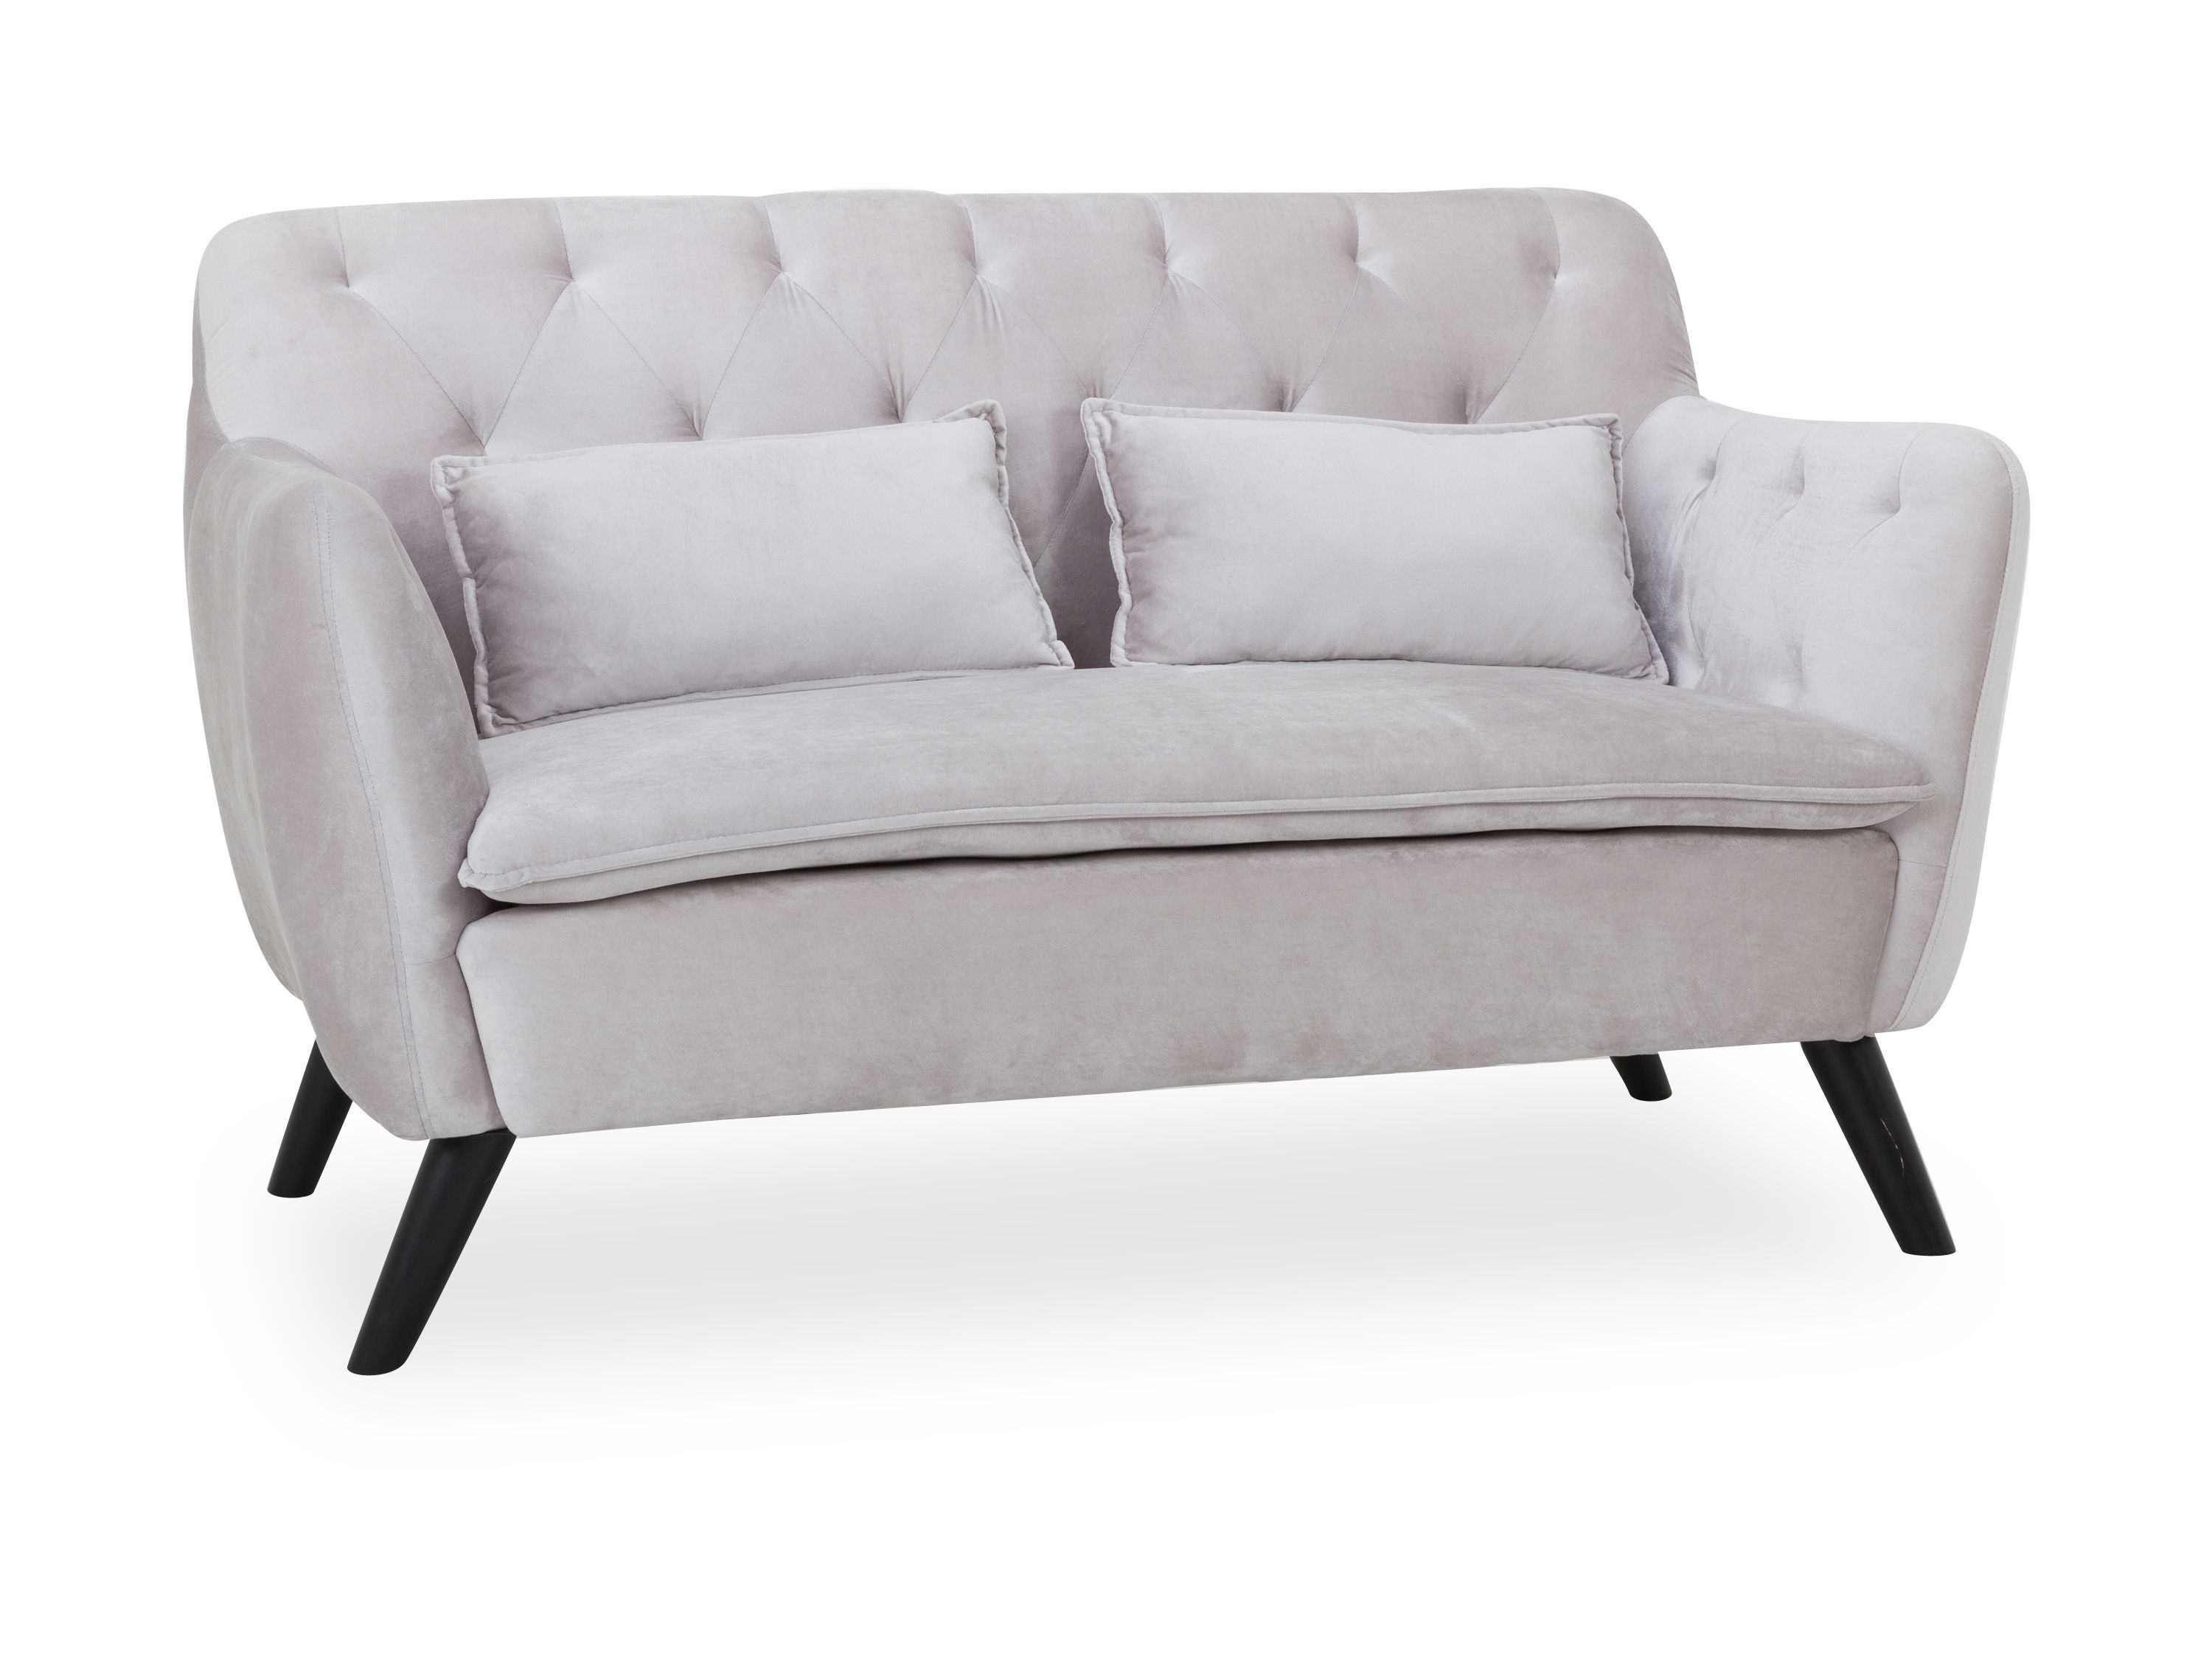 Zweiersofa Nele Sofa Sessel Sofa Atlantic Home Collection